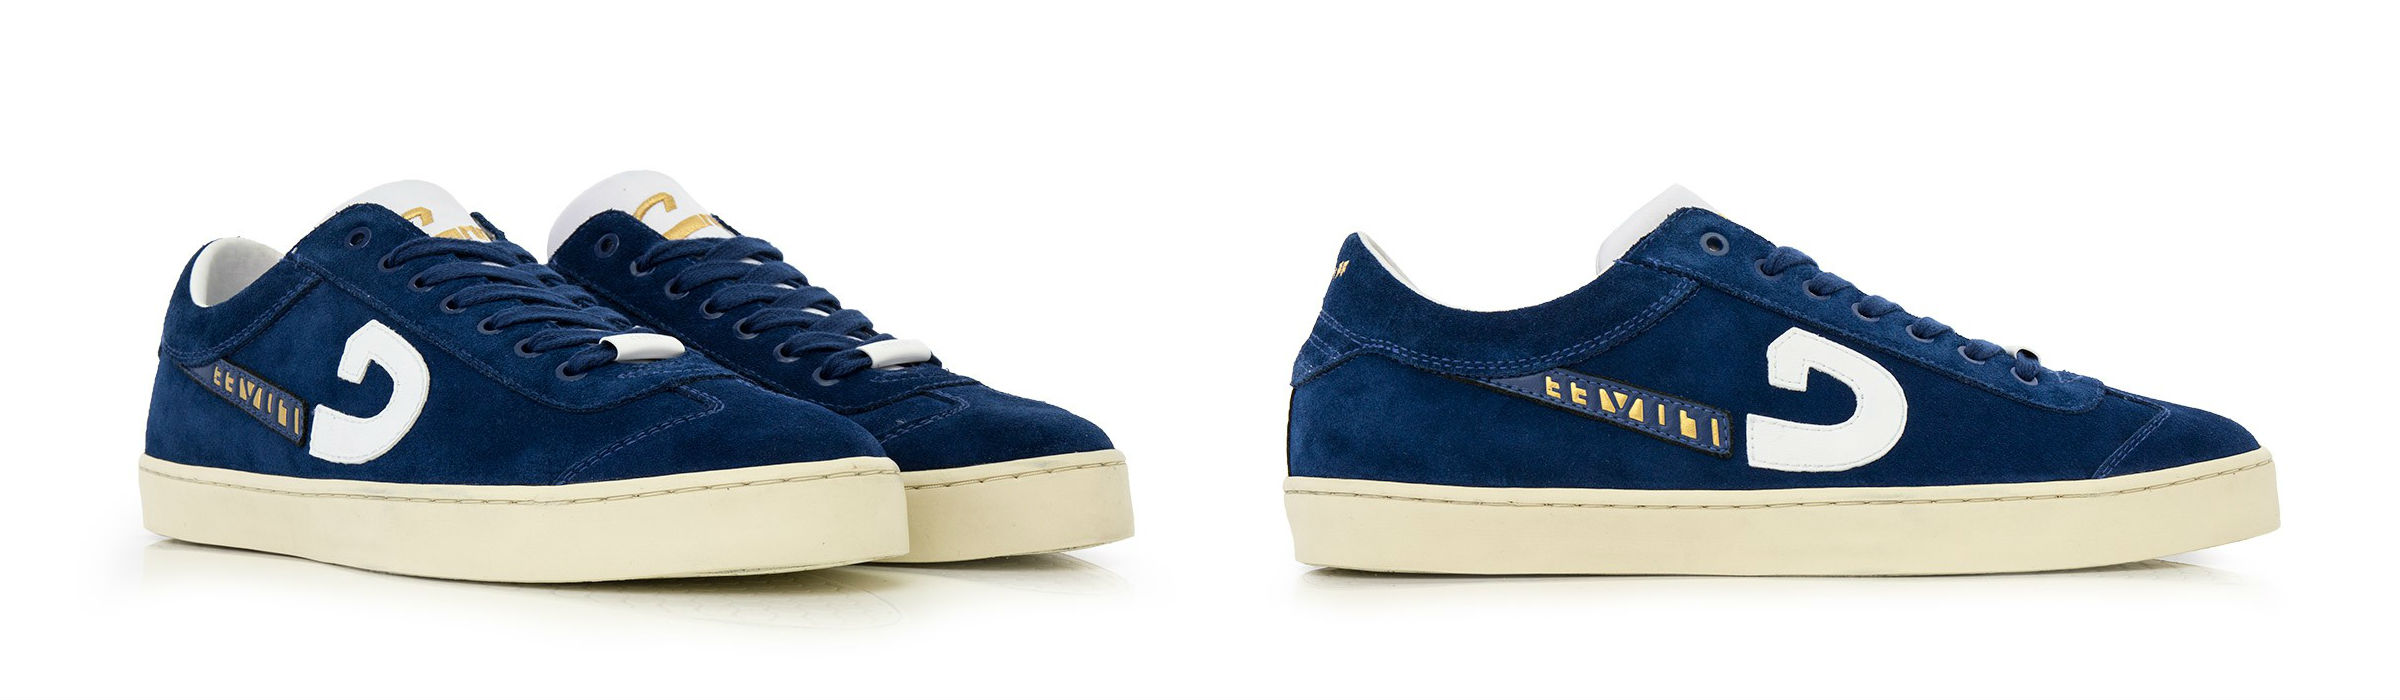 Cruyff Flash Shoes Blue Full